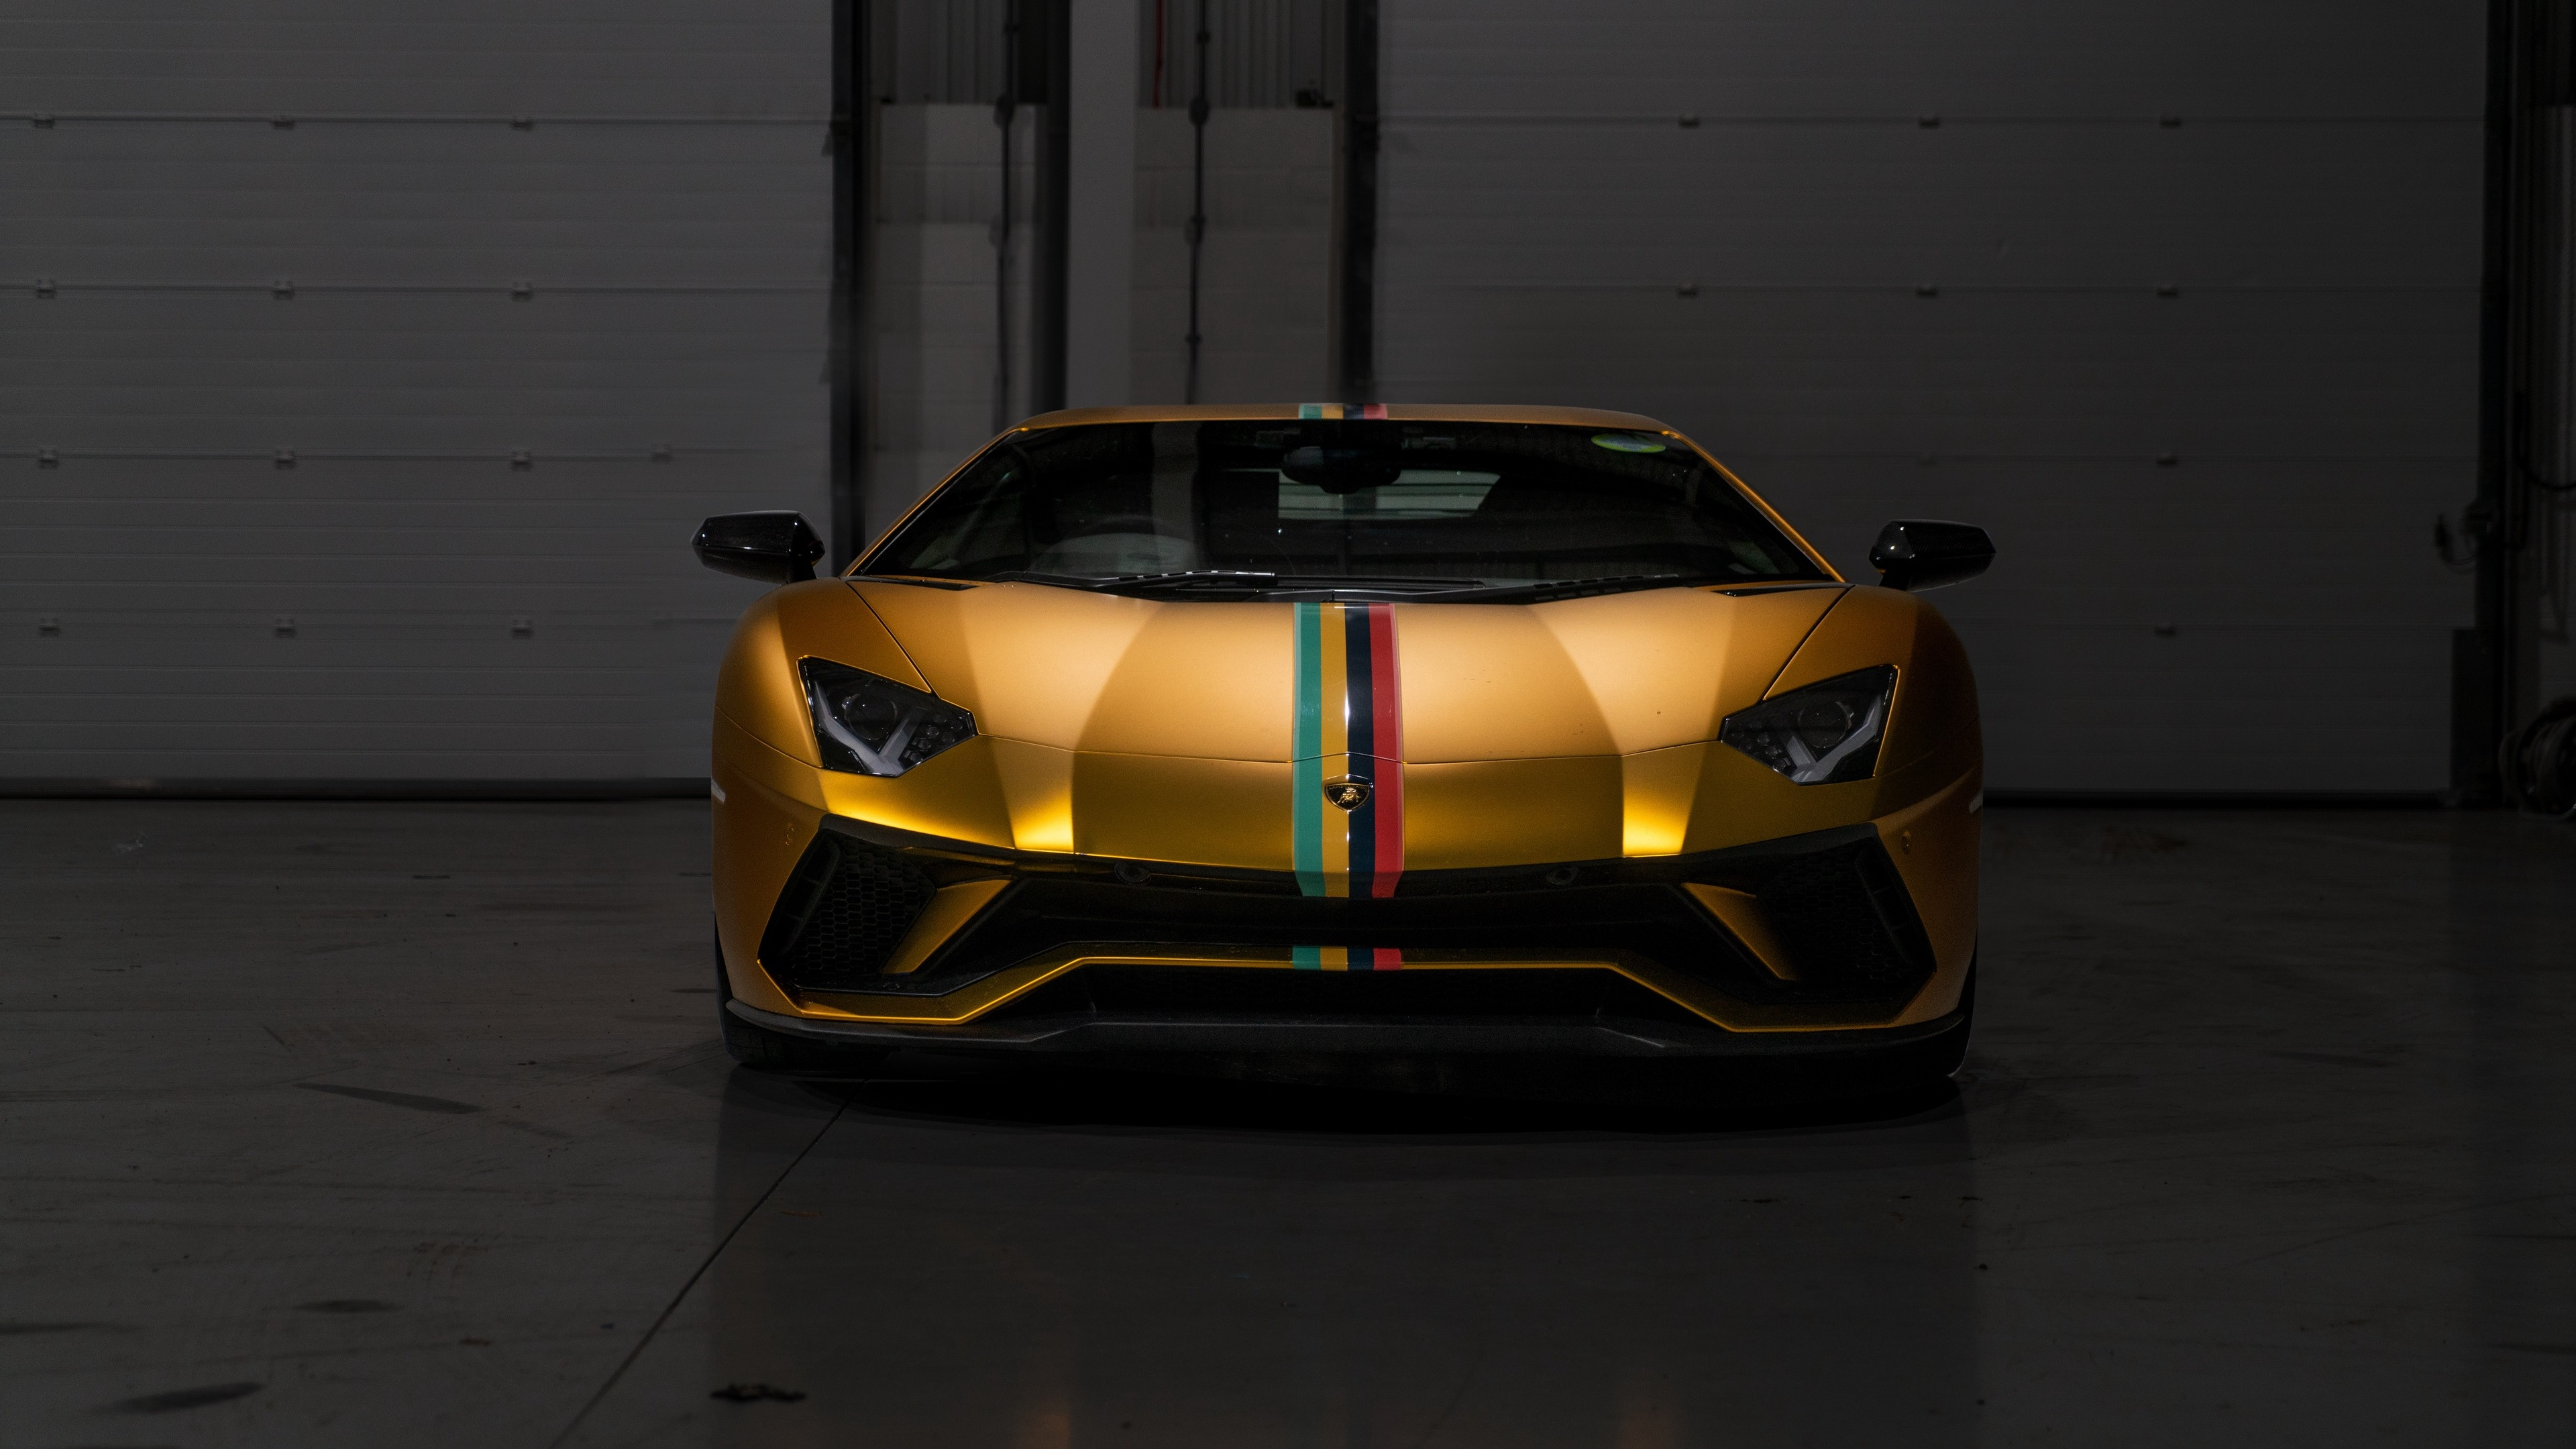 Sport Cars Wallpaper 4k: 4K Lamborghini Aventador Lamborghini Sports Car Wallpaper